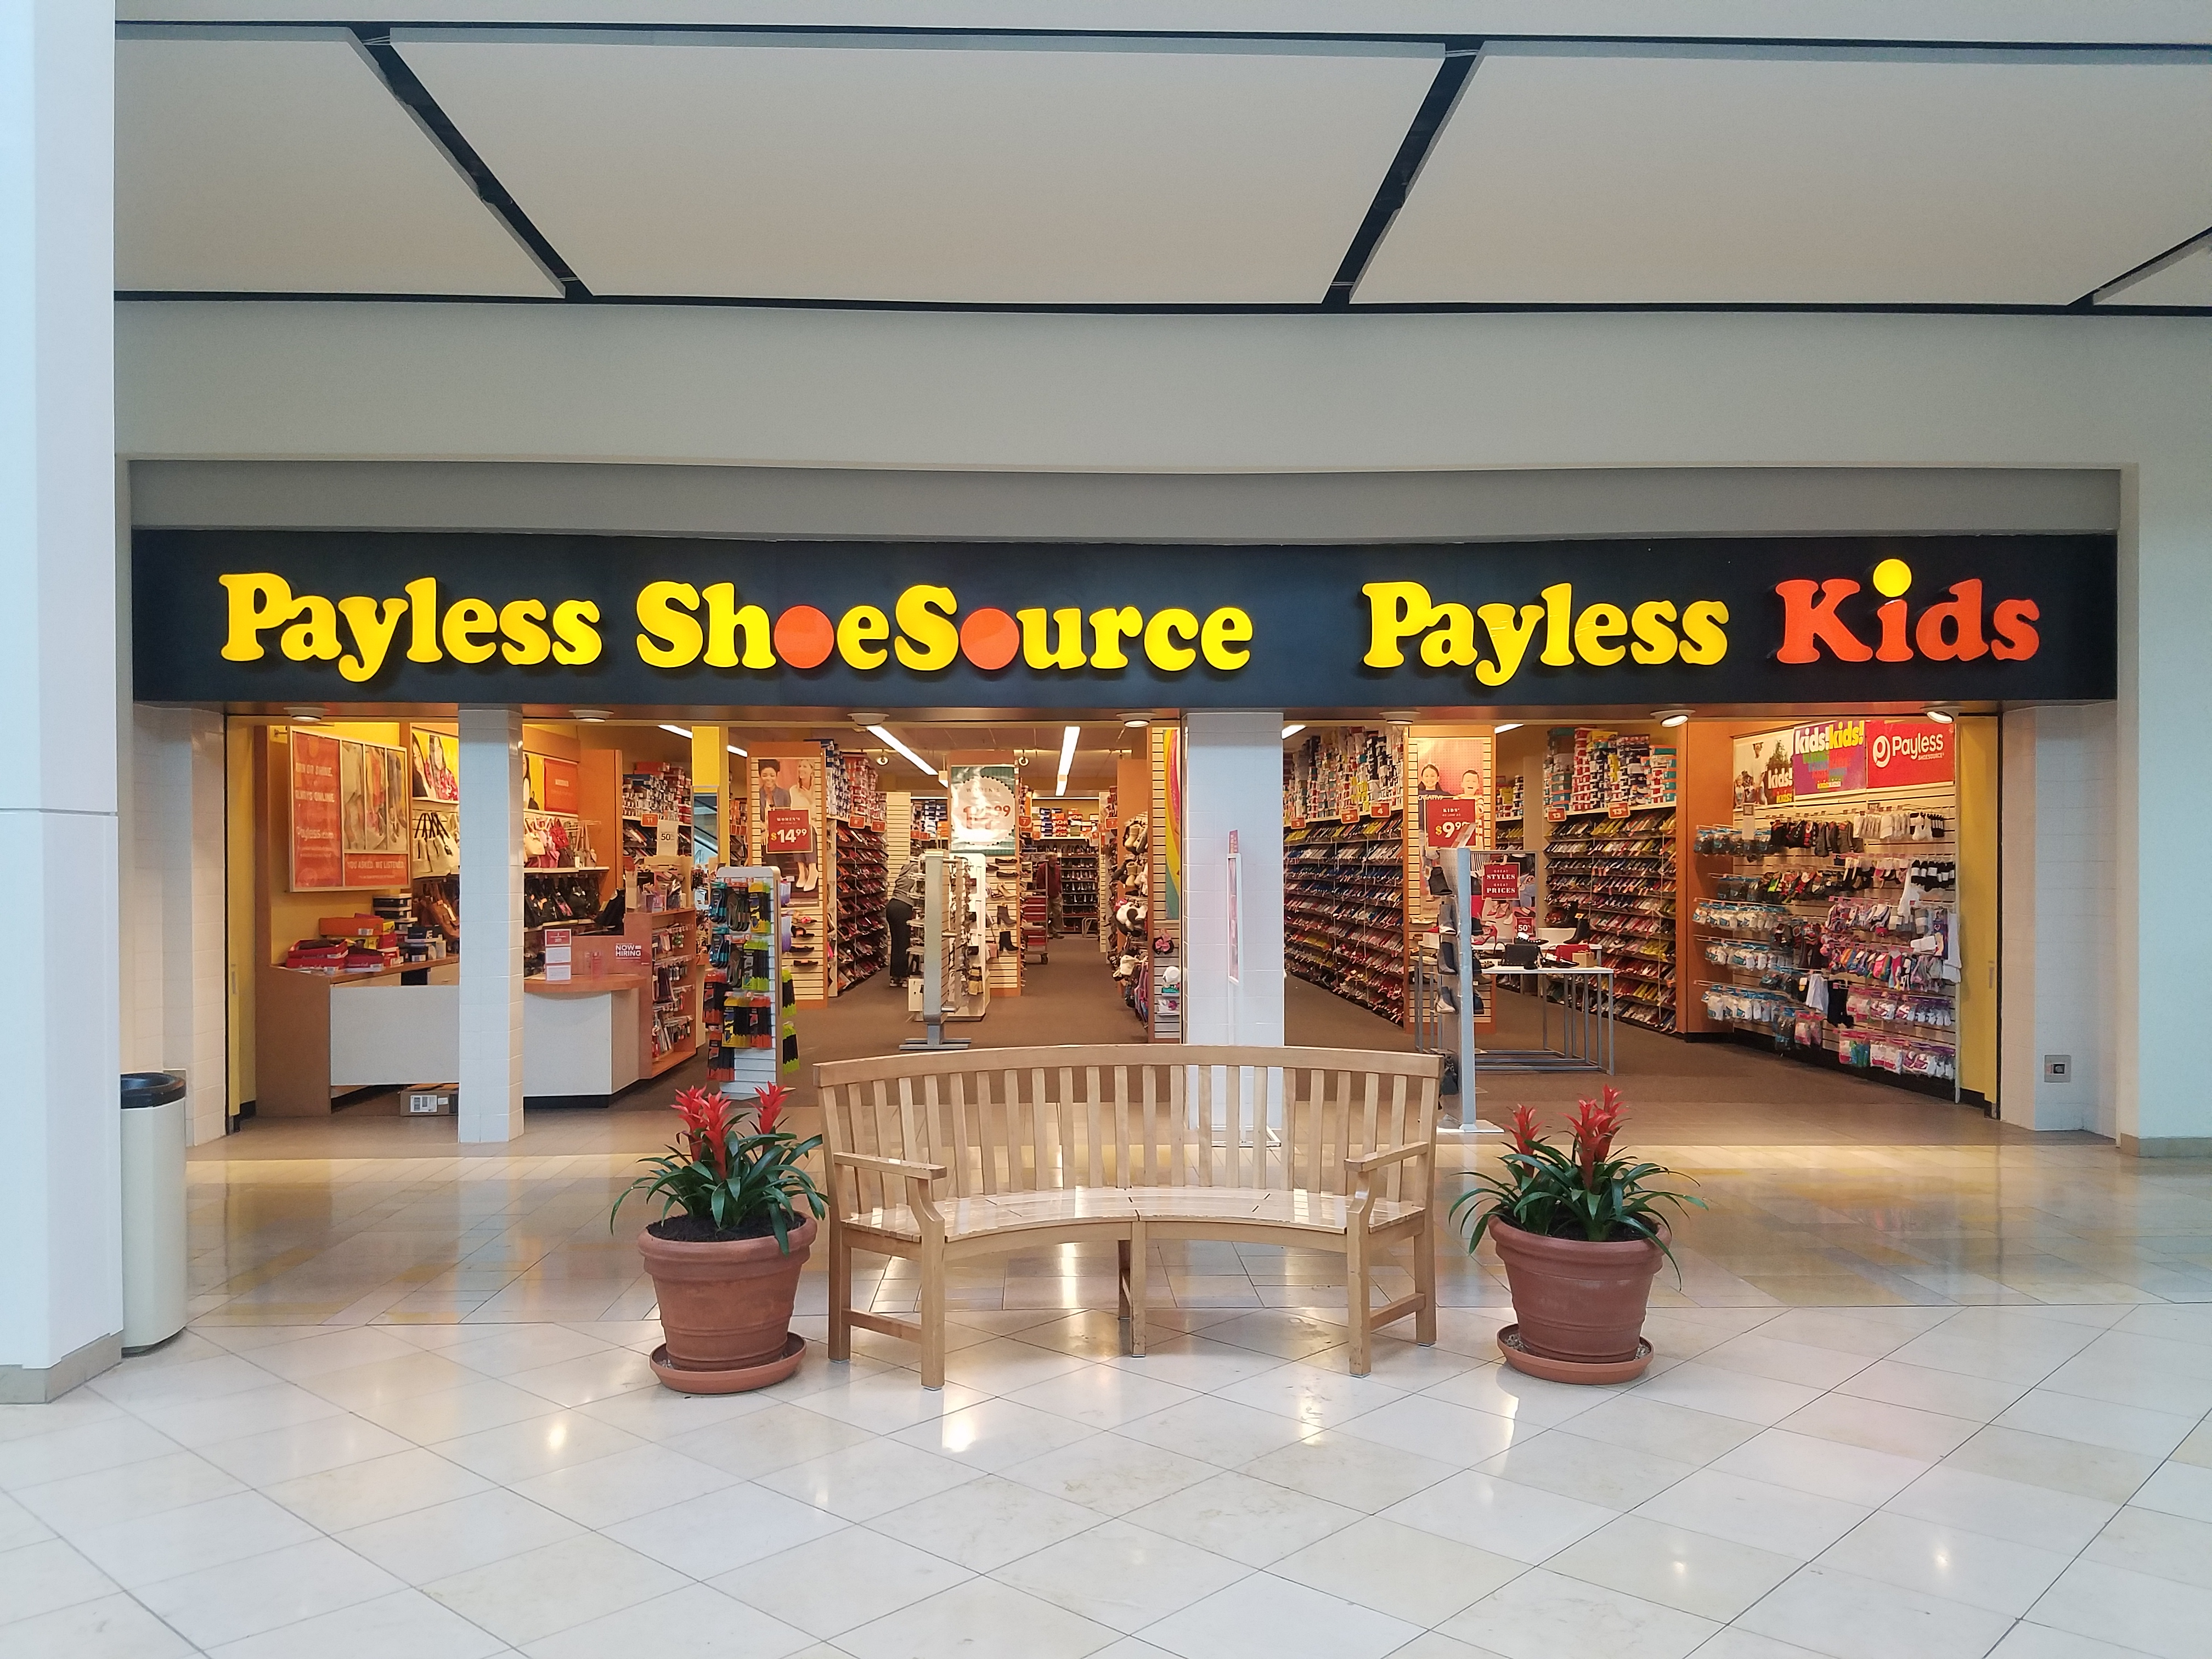 File:Plymouth Meeting Mall - Payless